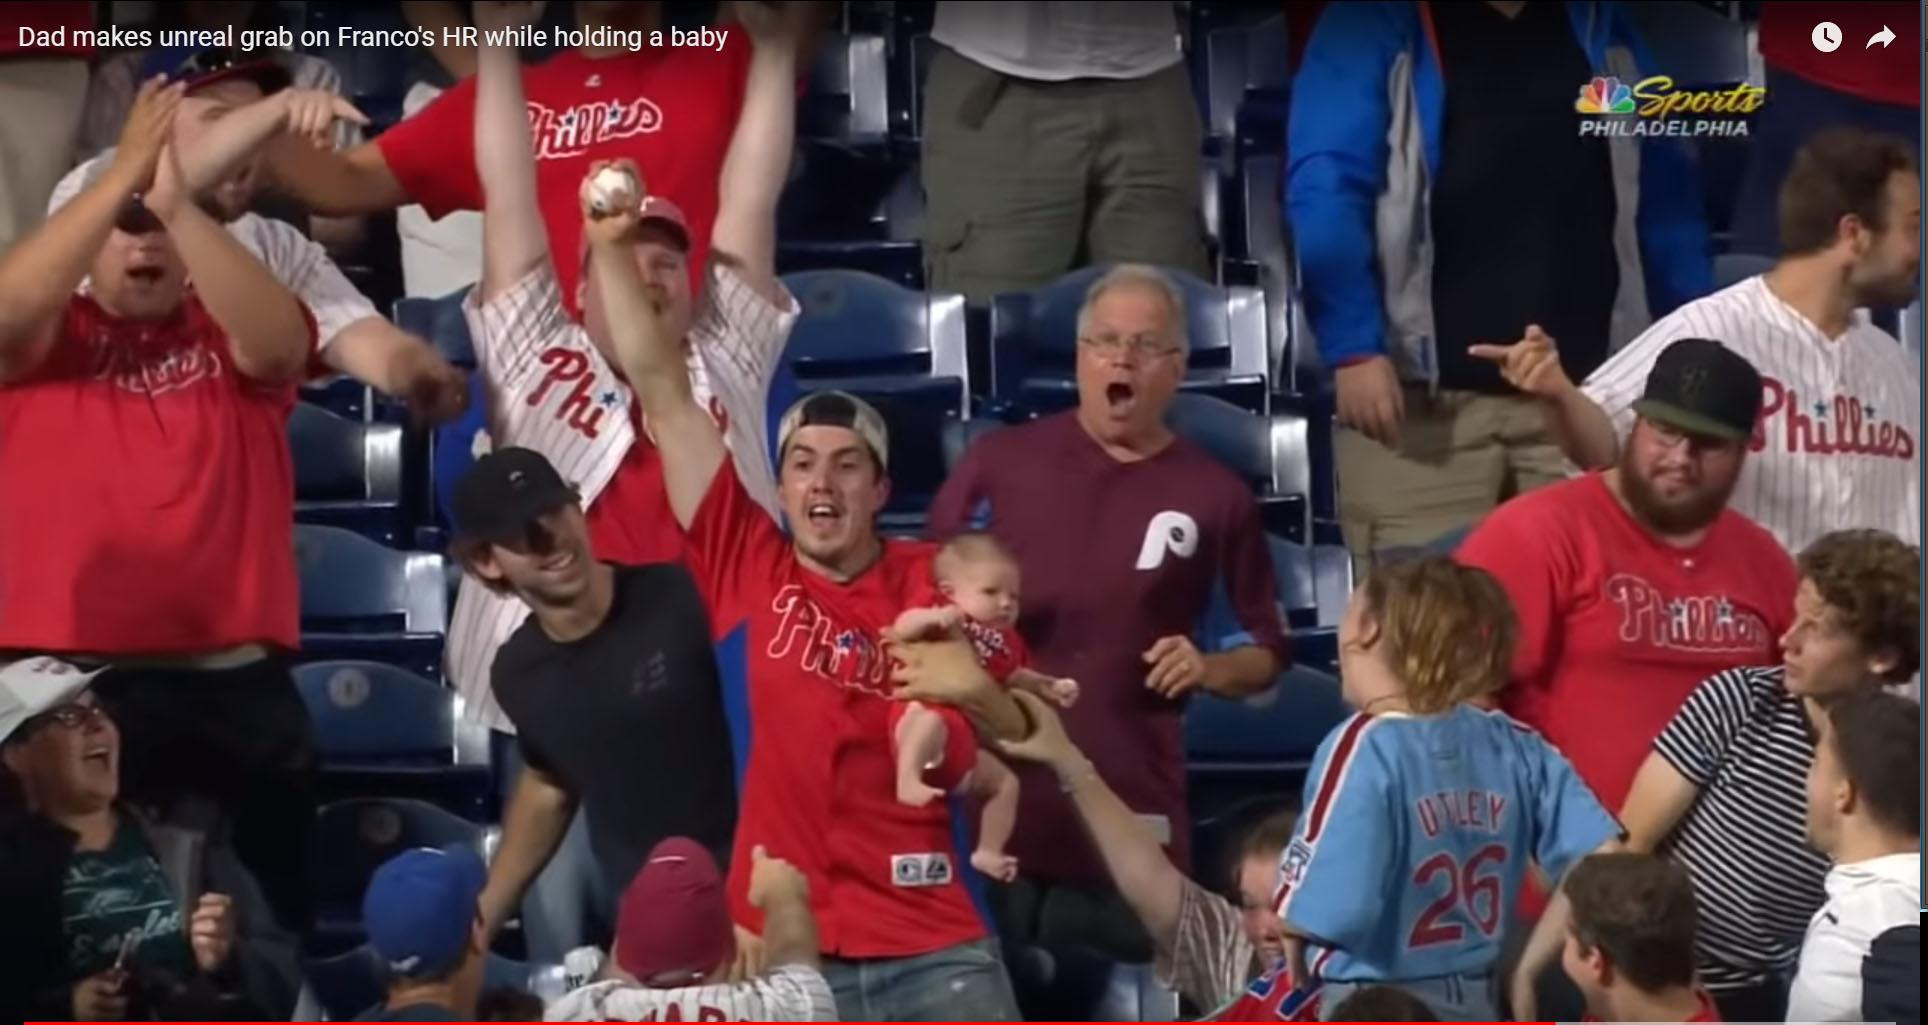 The Philadelphia fan had his son in his left hand and the ball in his right